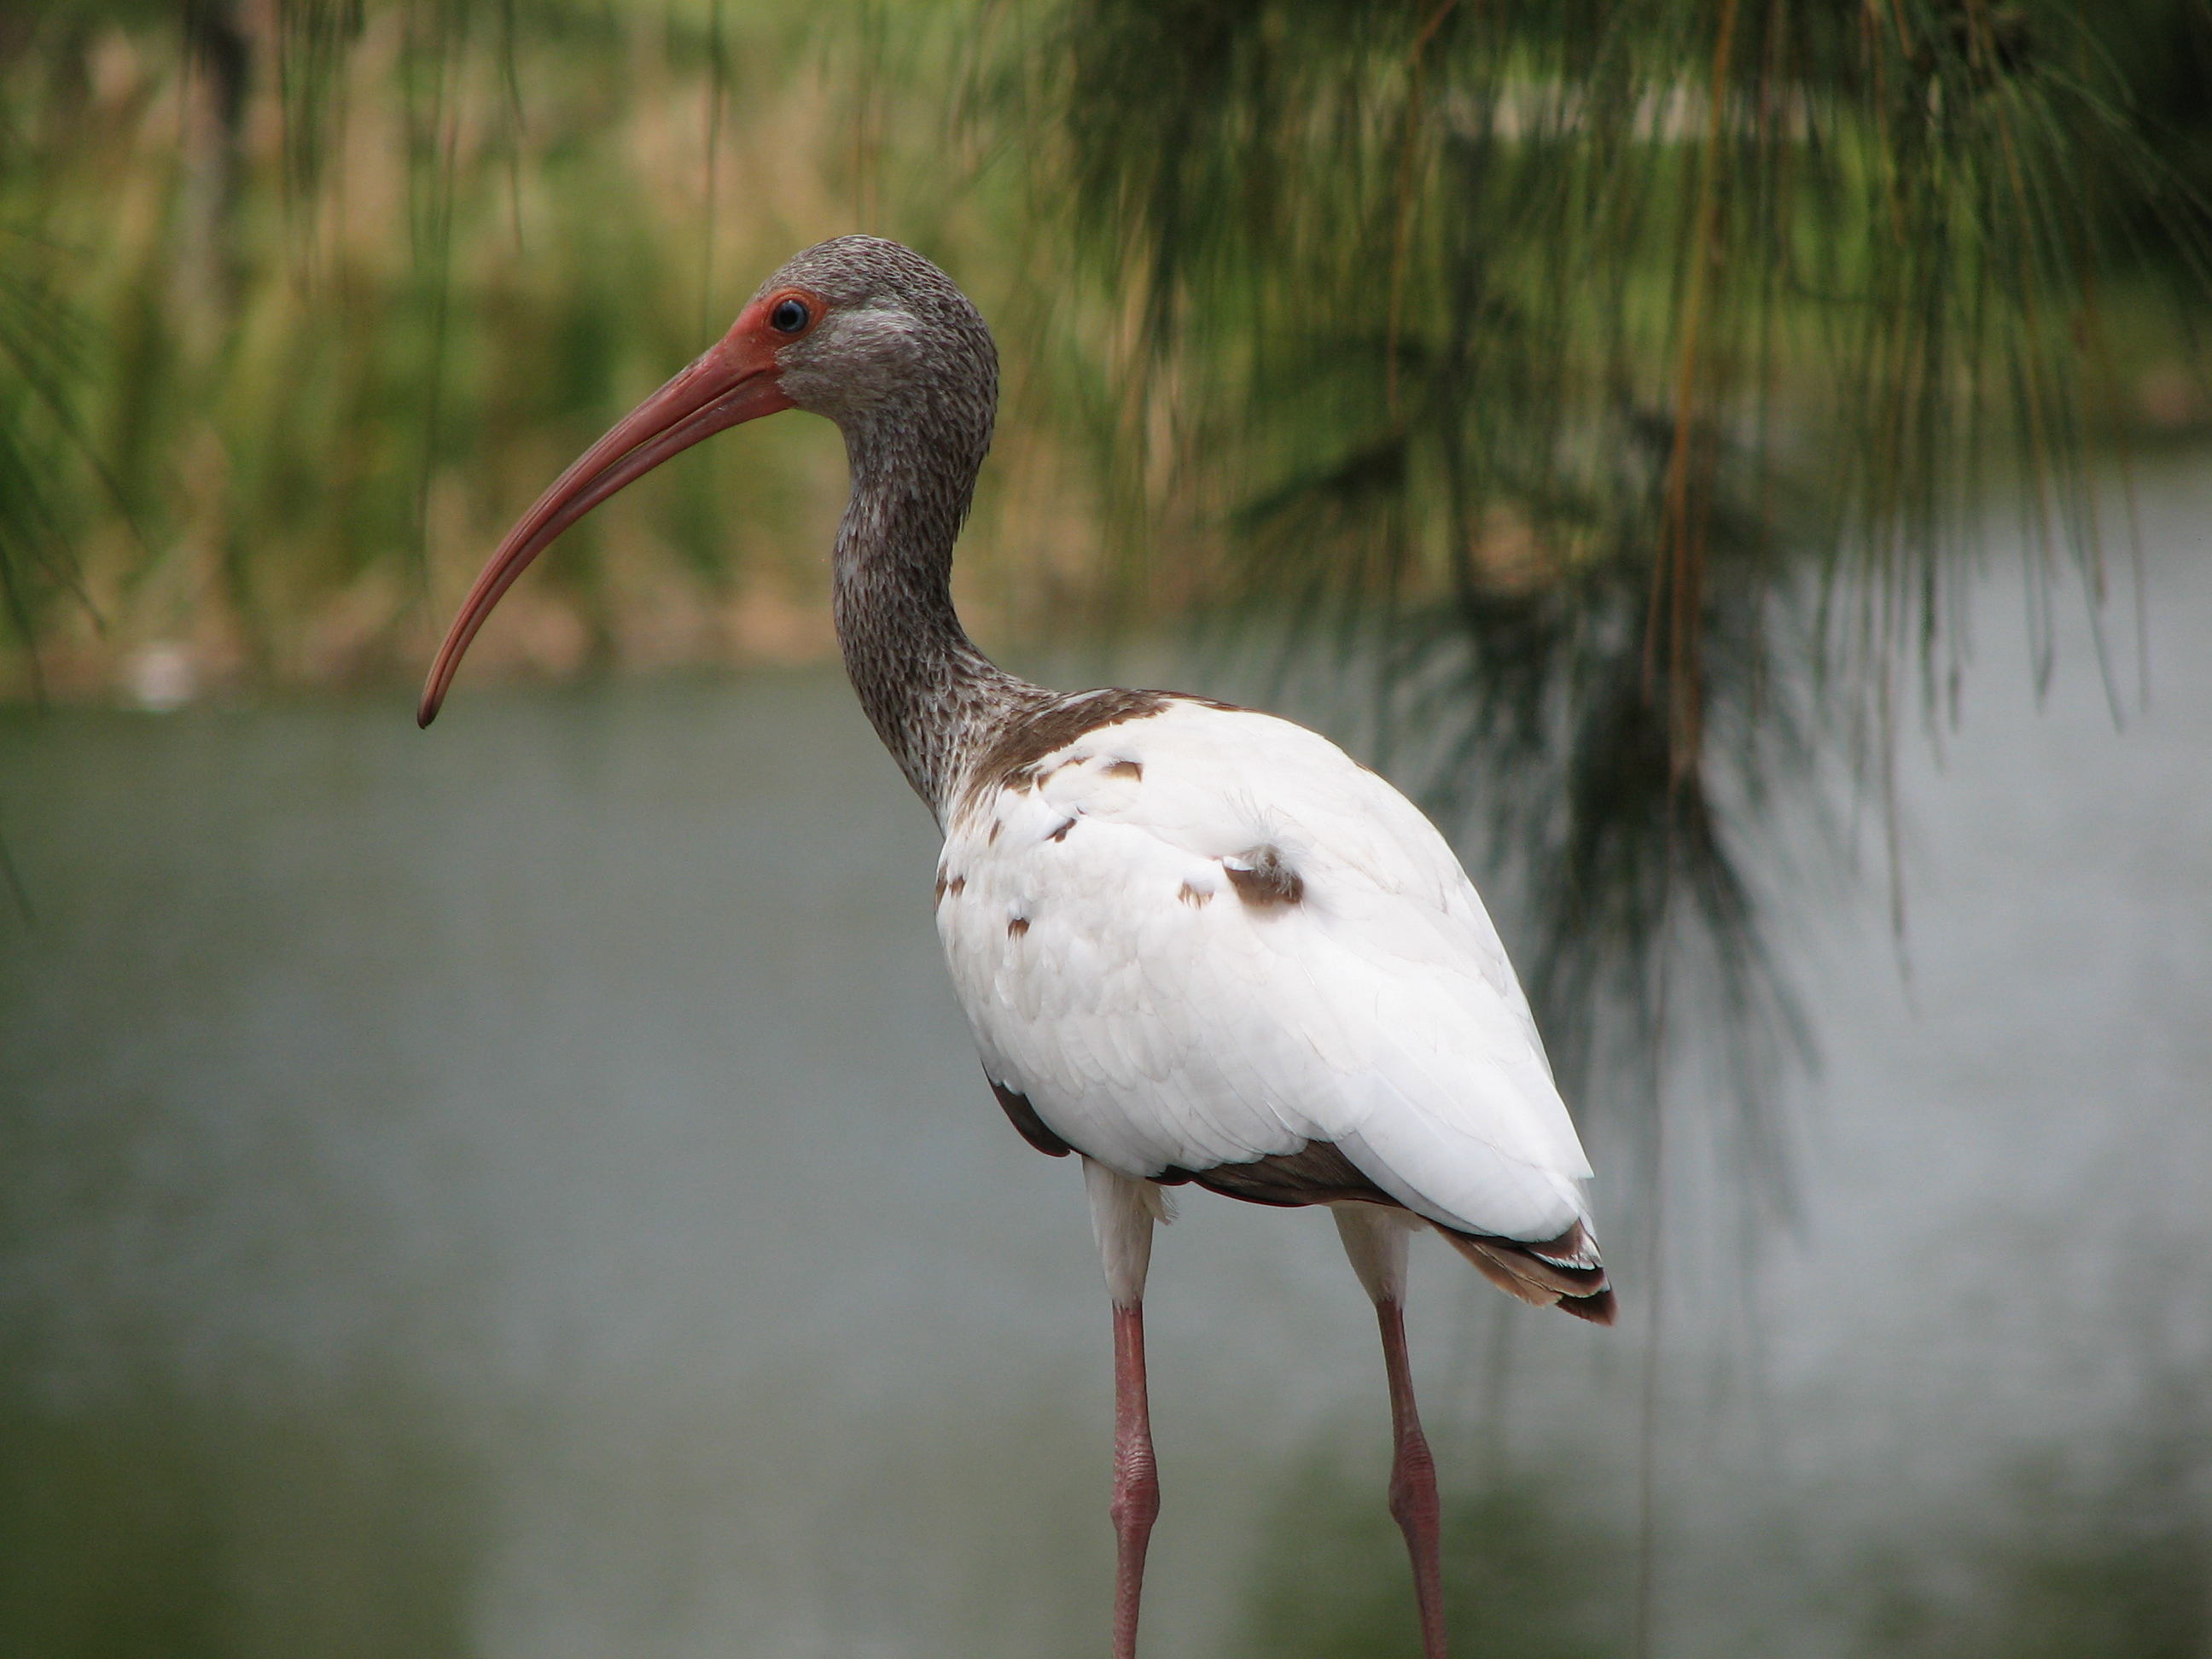 American White Ibis photo: Juvenile White Ibis on handrail | the ...